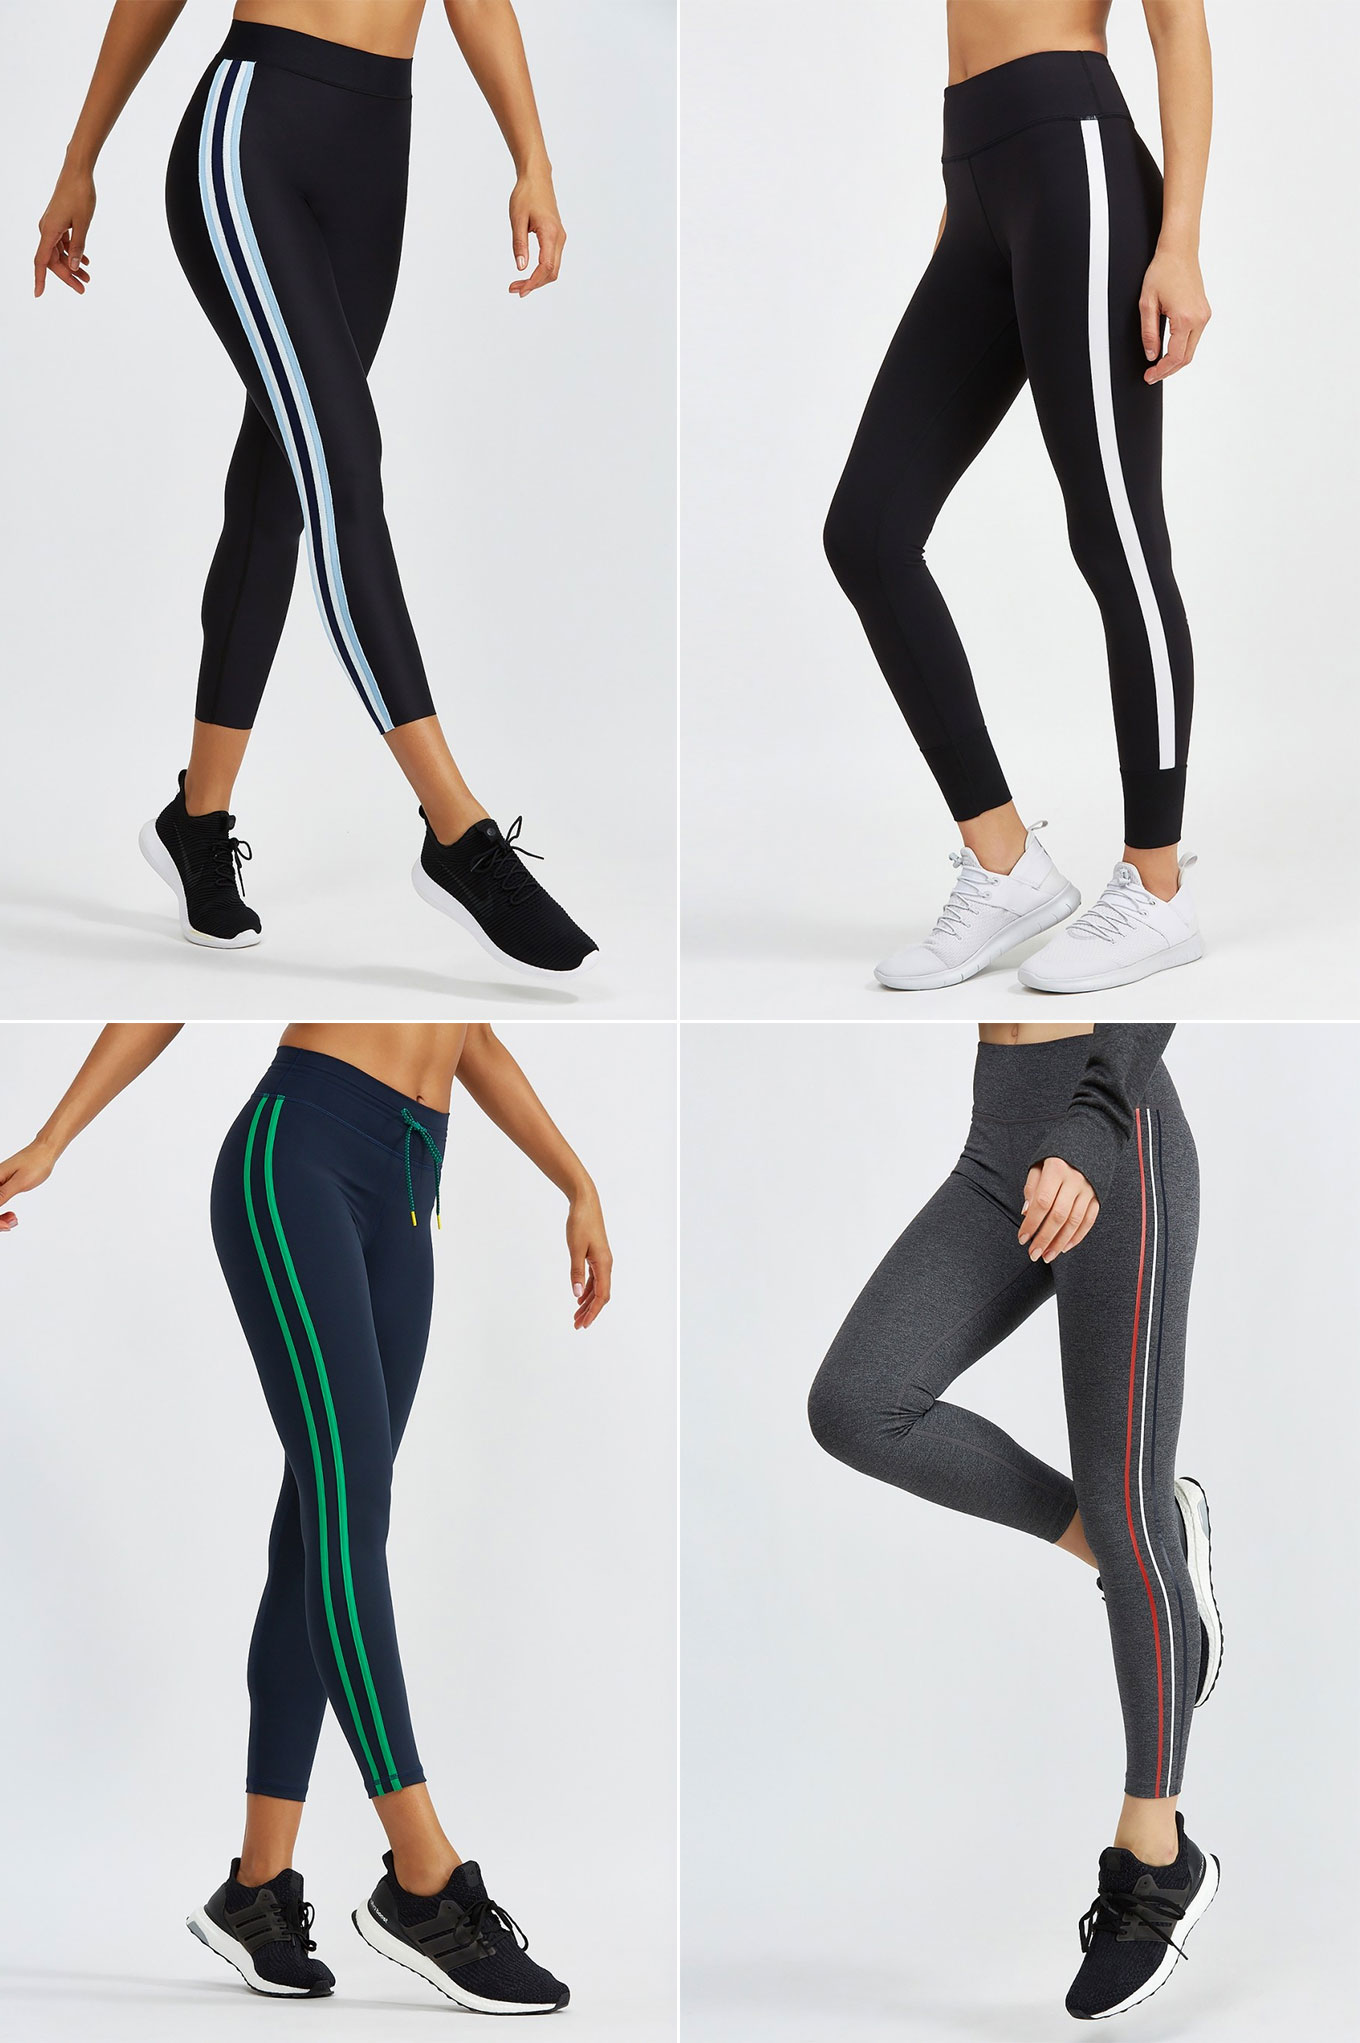 Ridgely Brode pulls together several workout and/or athleisure leggings from the current Side Stripe Pant Trend on her blog Ridgely's Radar.